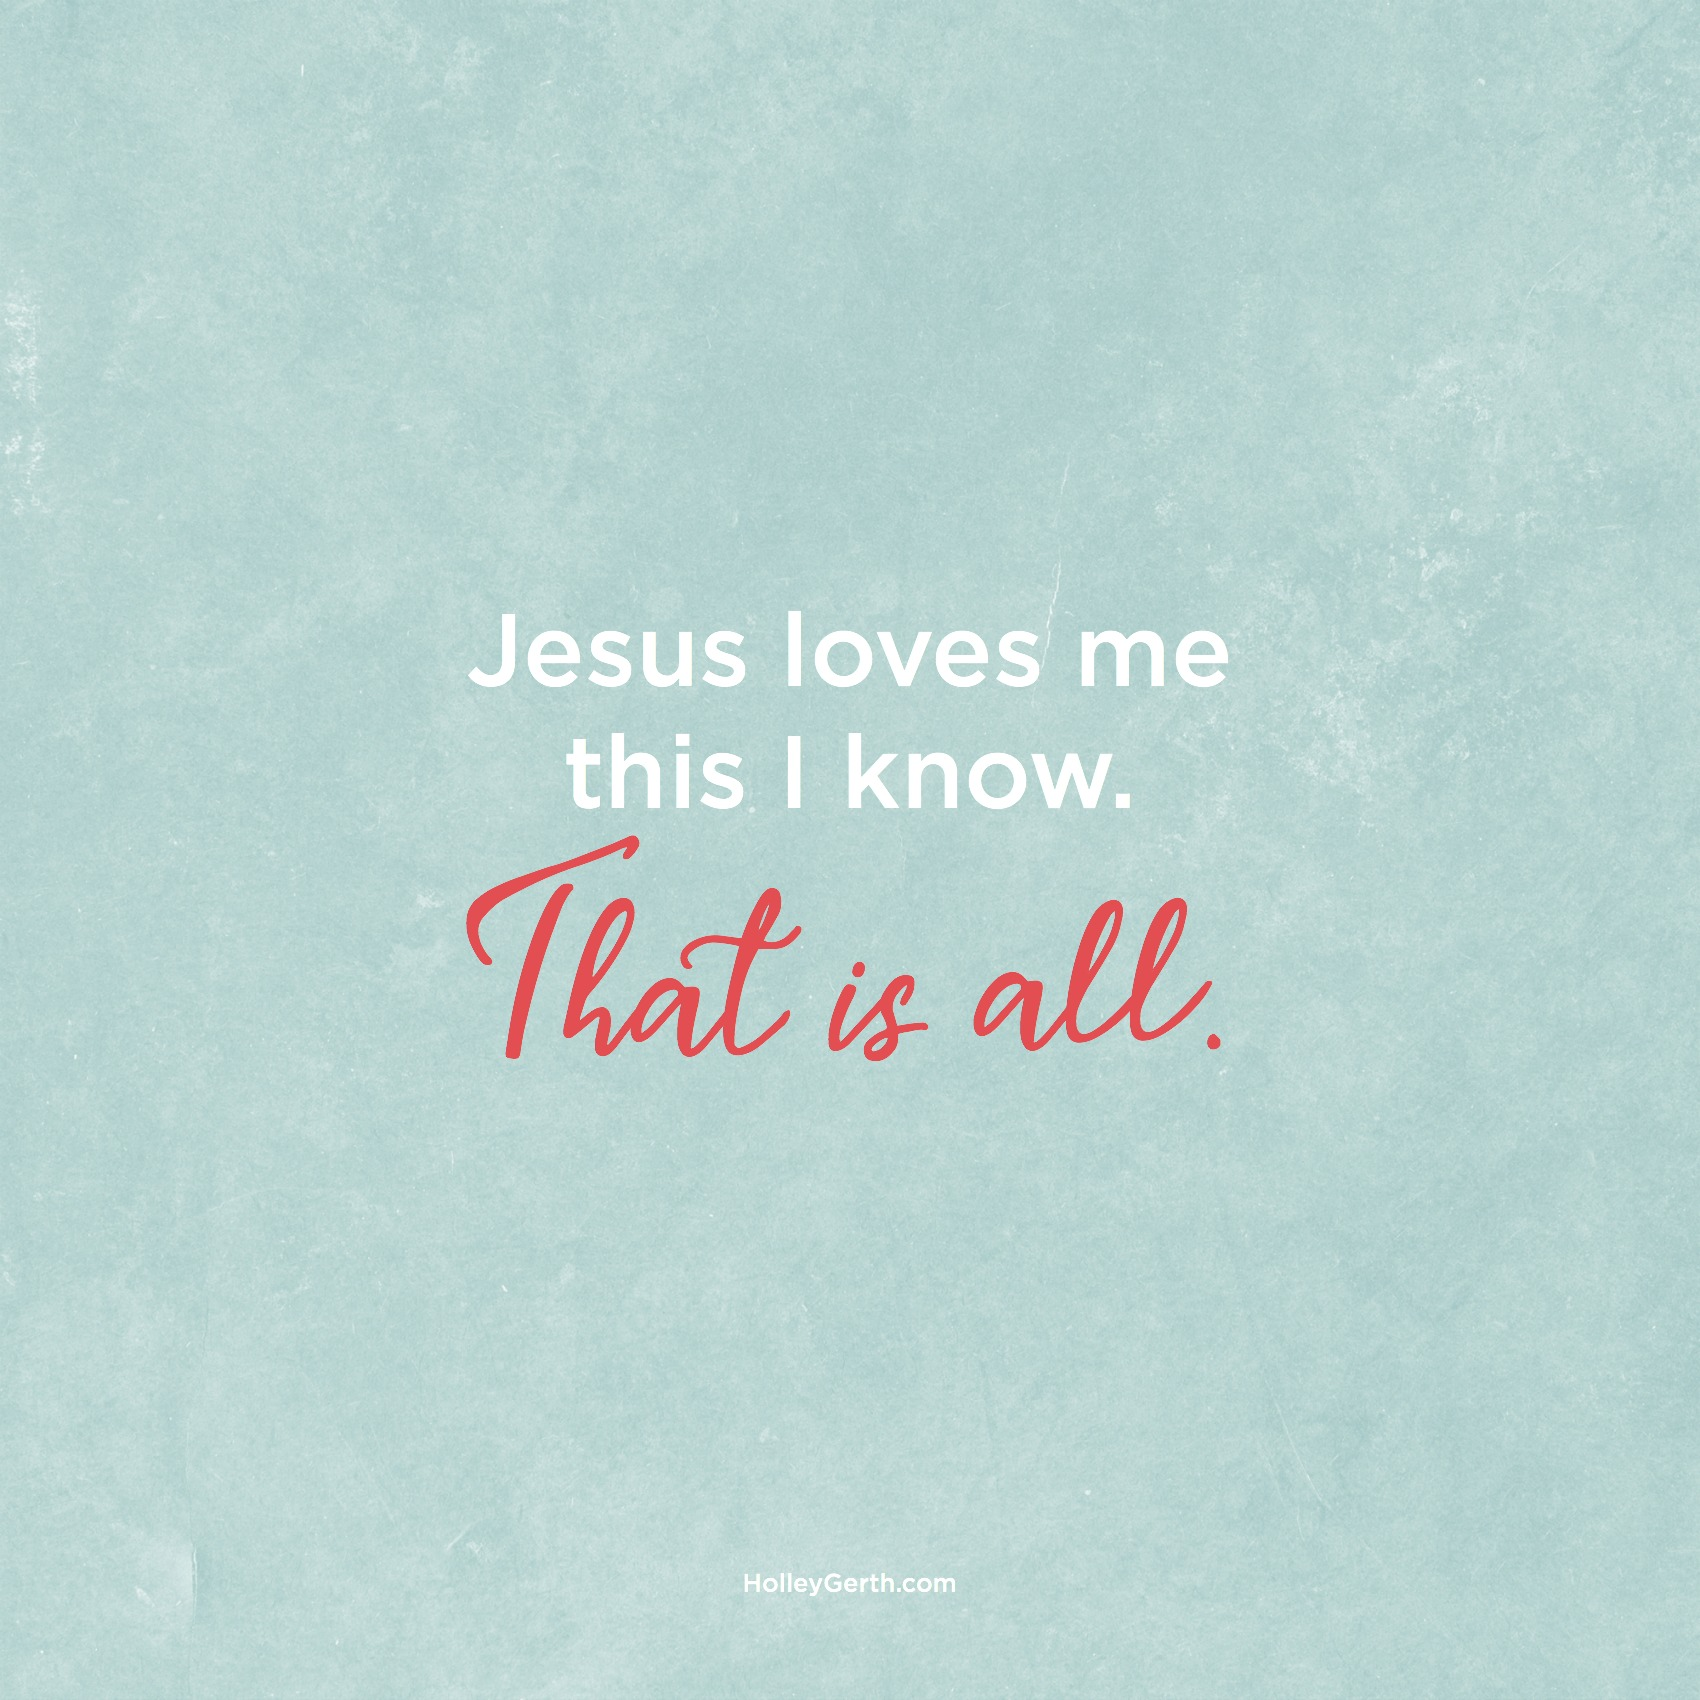 Jesus loves me this I know. That is all.